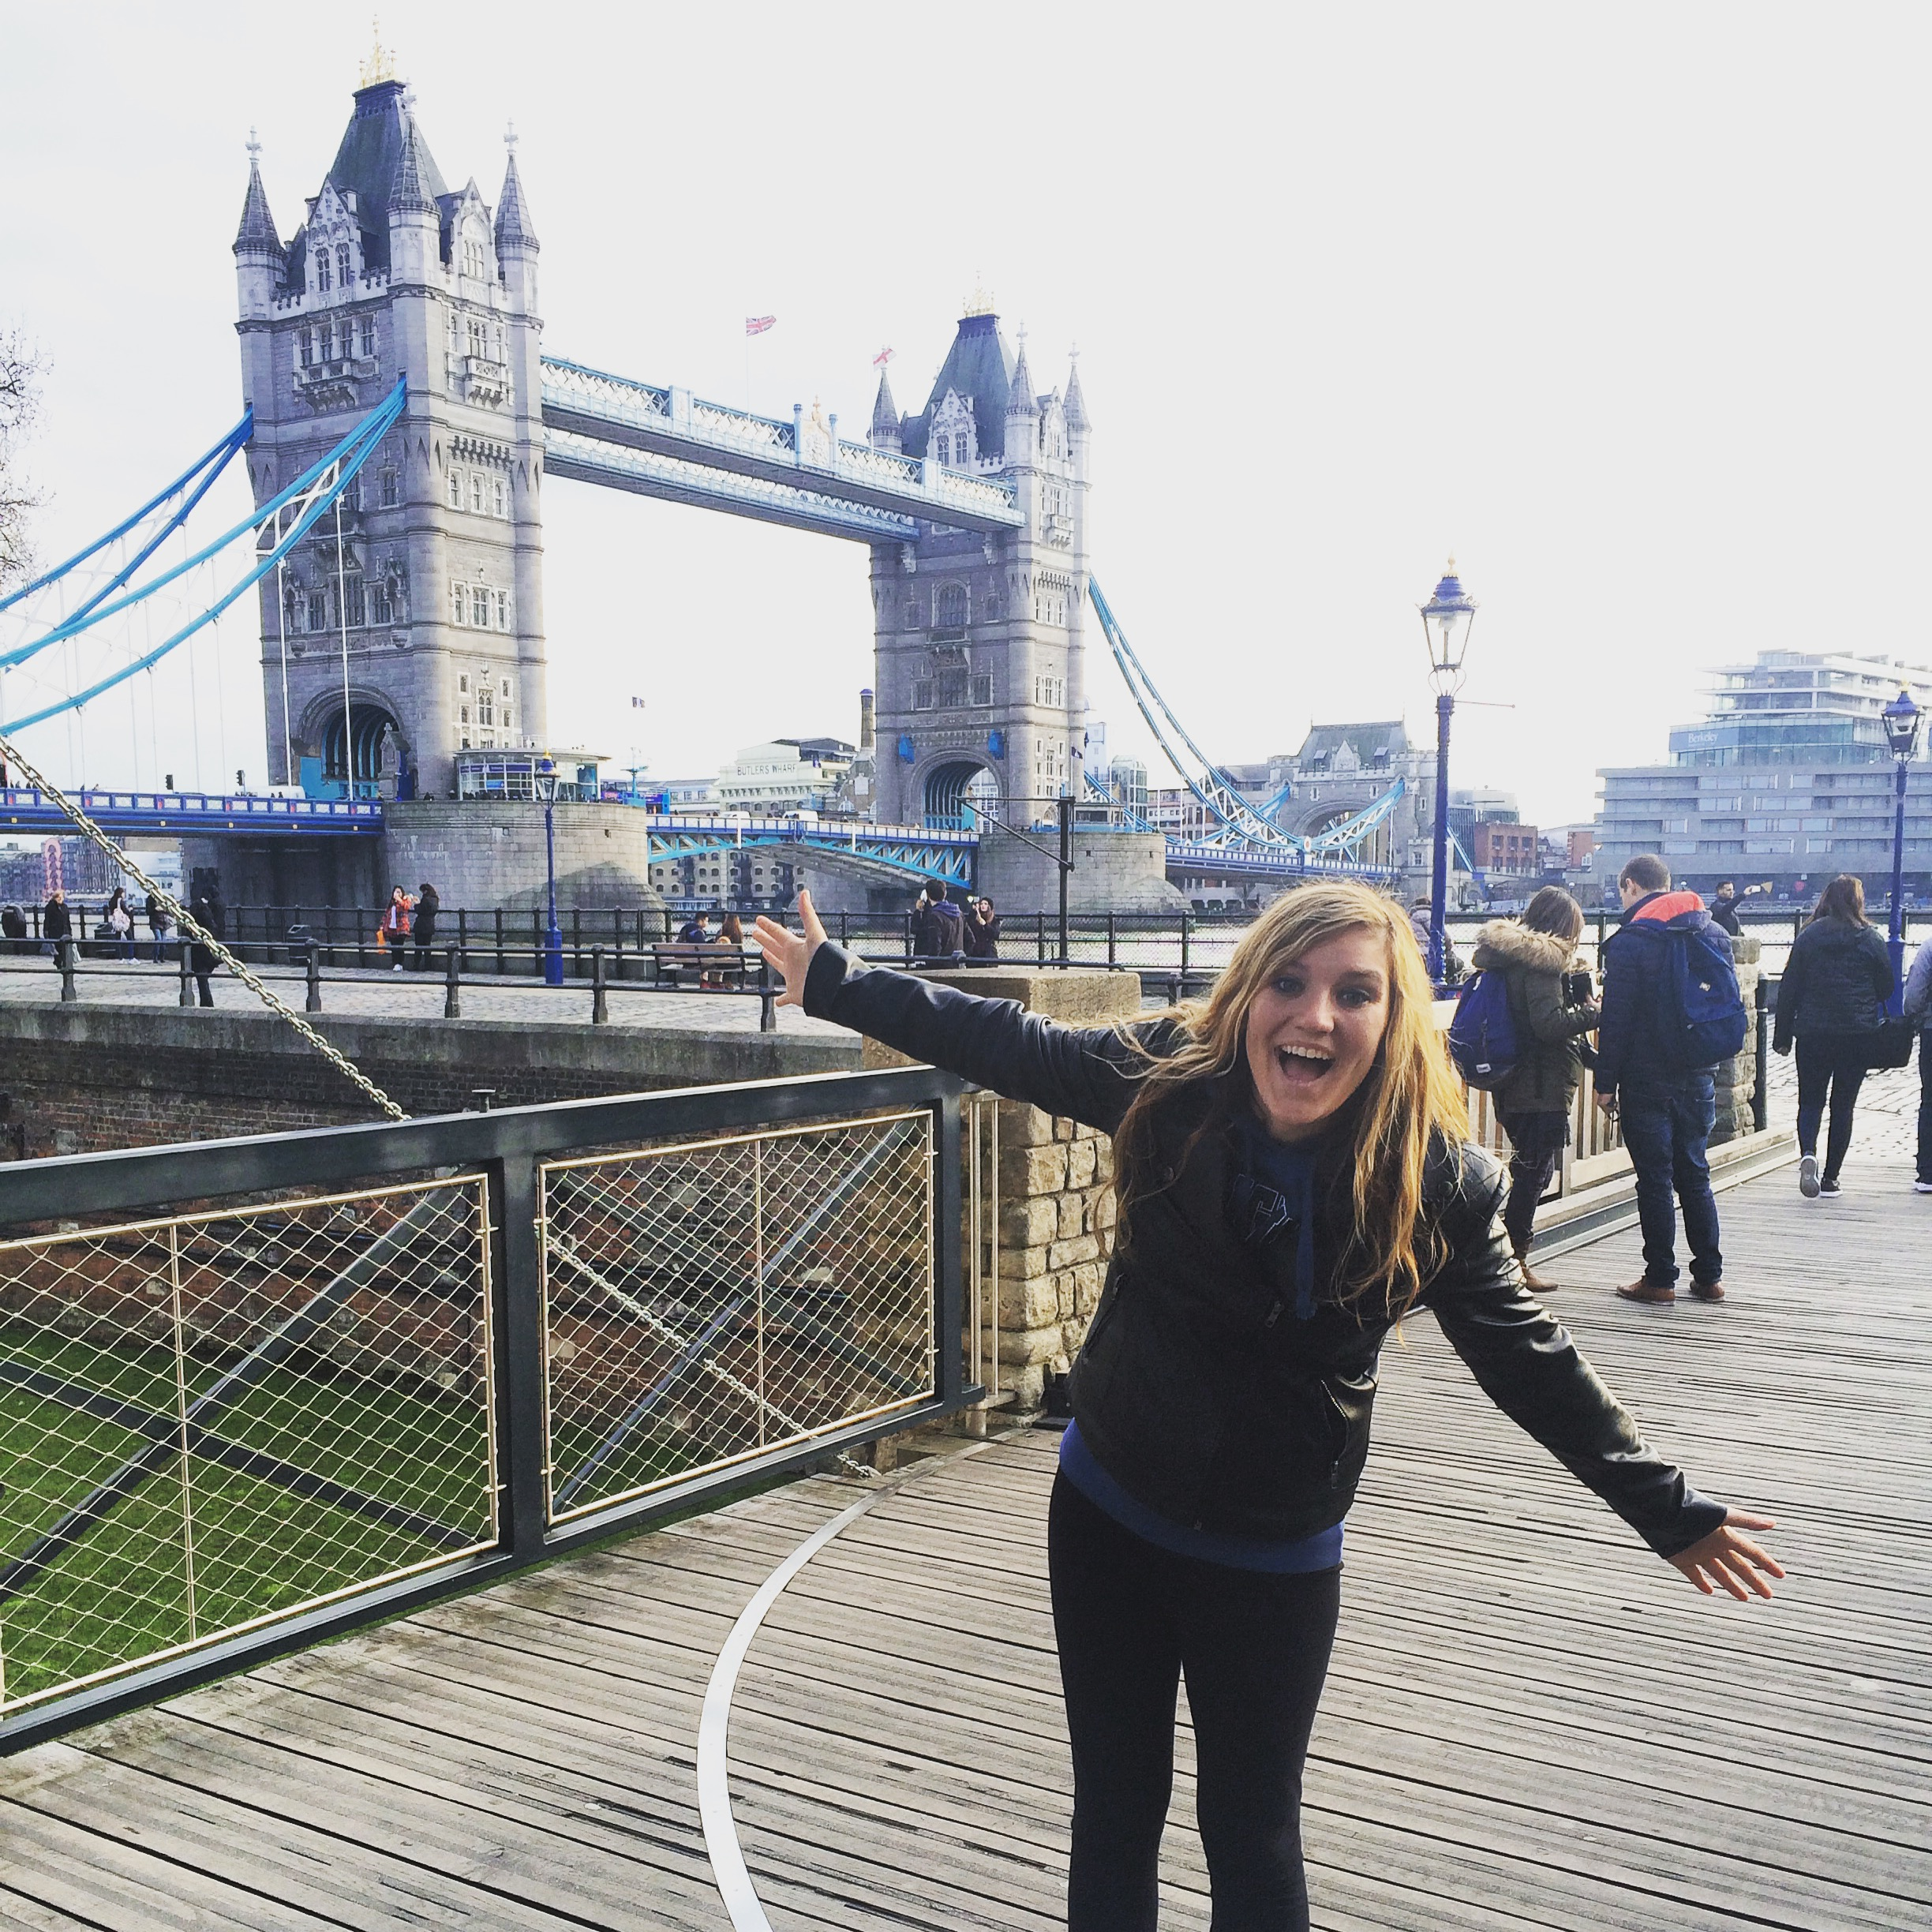 Kelly Papanicholas in front of the Tower Bridge